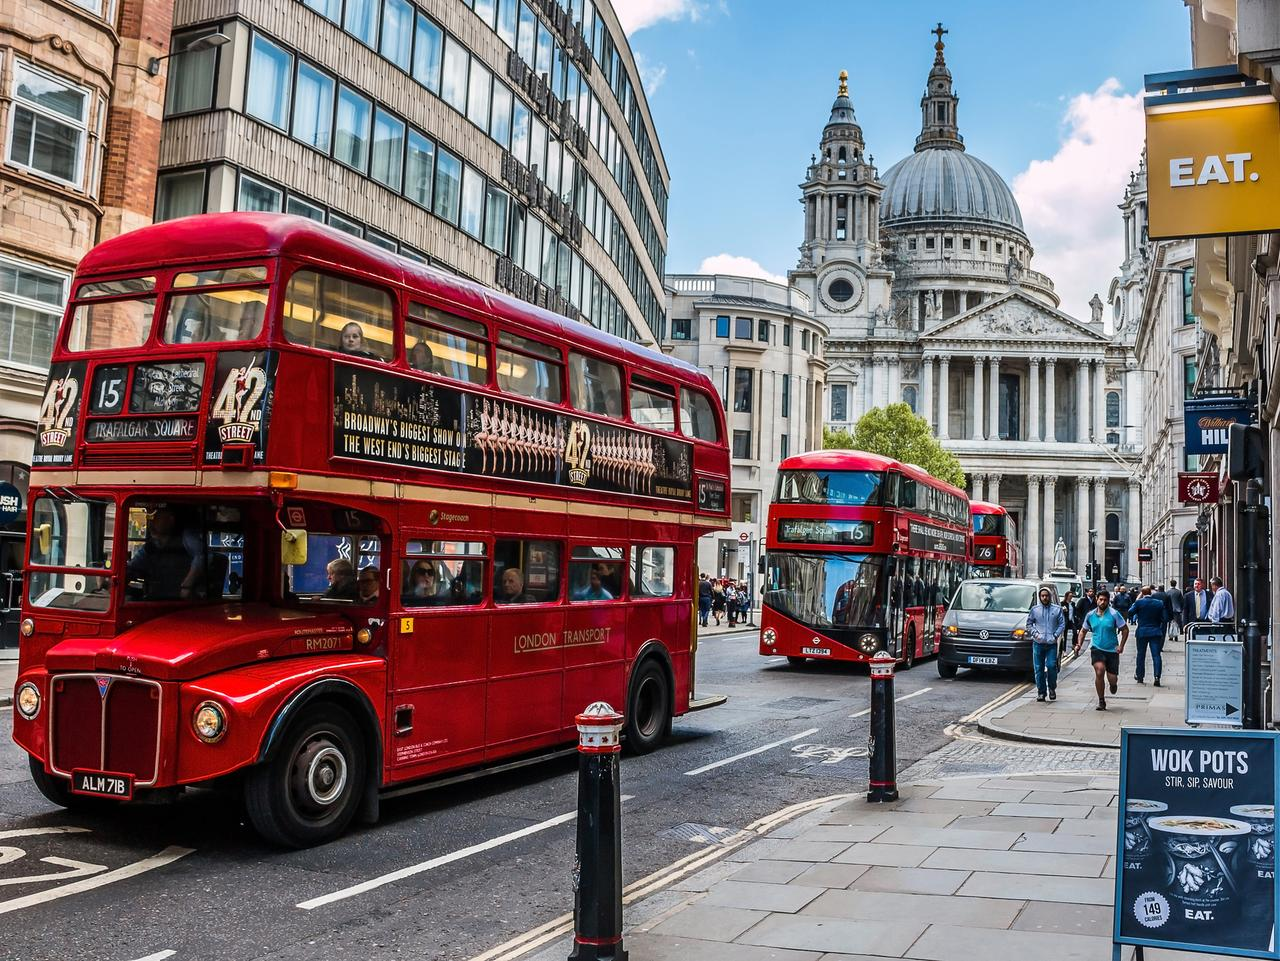 London: Busy street in central London, with classic retro and new modern double decker buses and St. Paul's Cathedral in the background. HDR style image